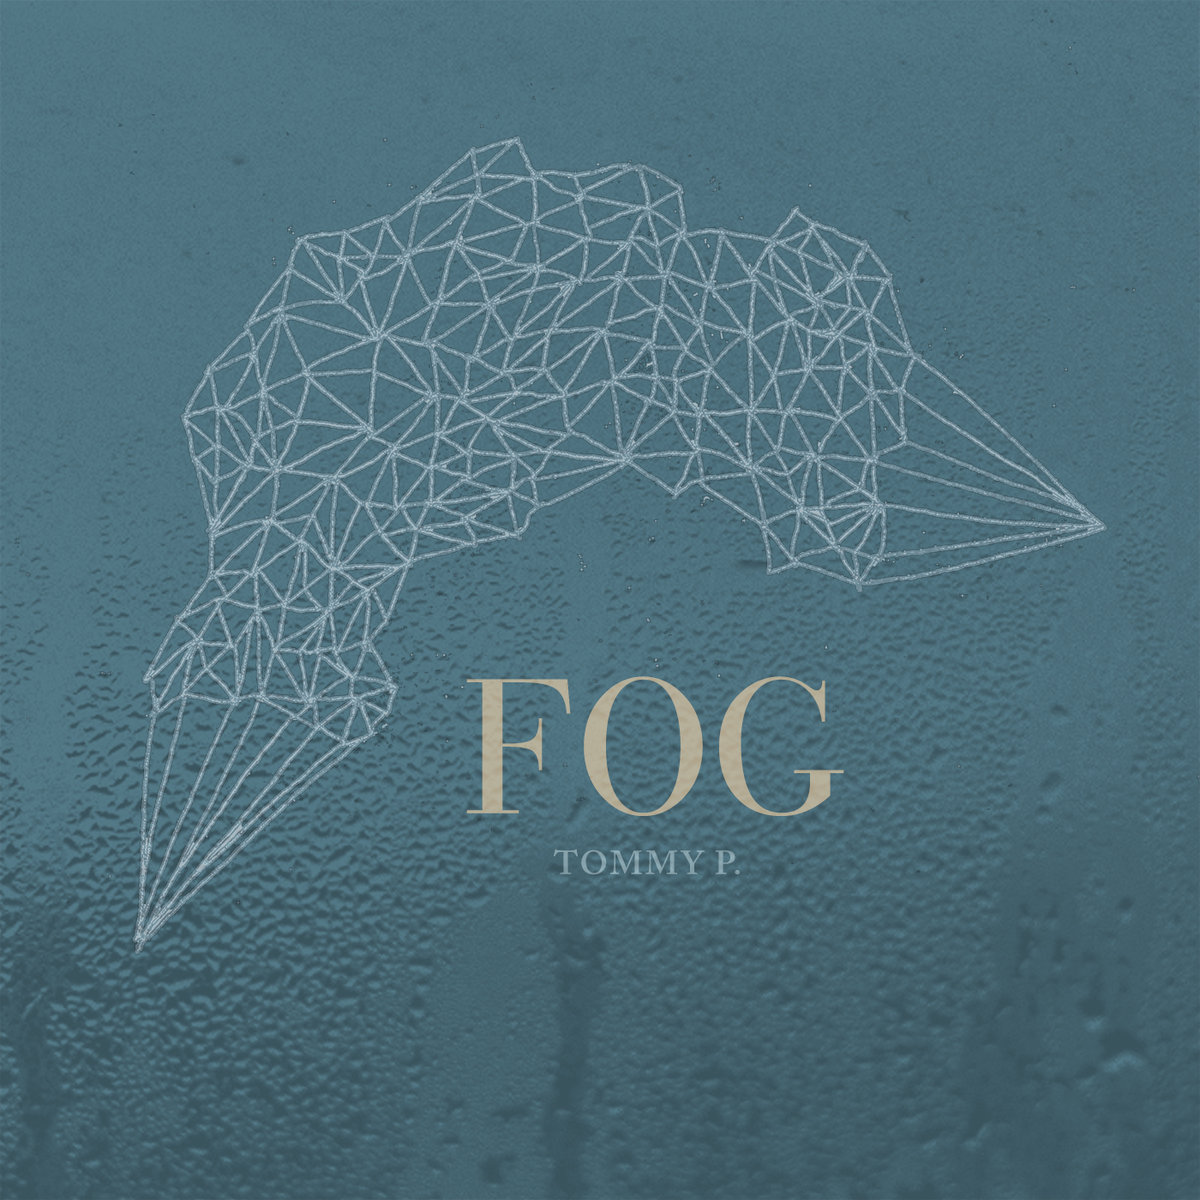 Tommy P. - Simpler Than We Realize @ 'Fog' album (11th ave records, 11thaverecords 11th avenue)